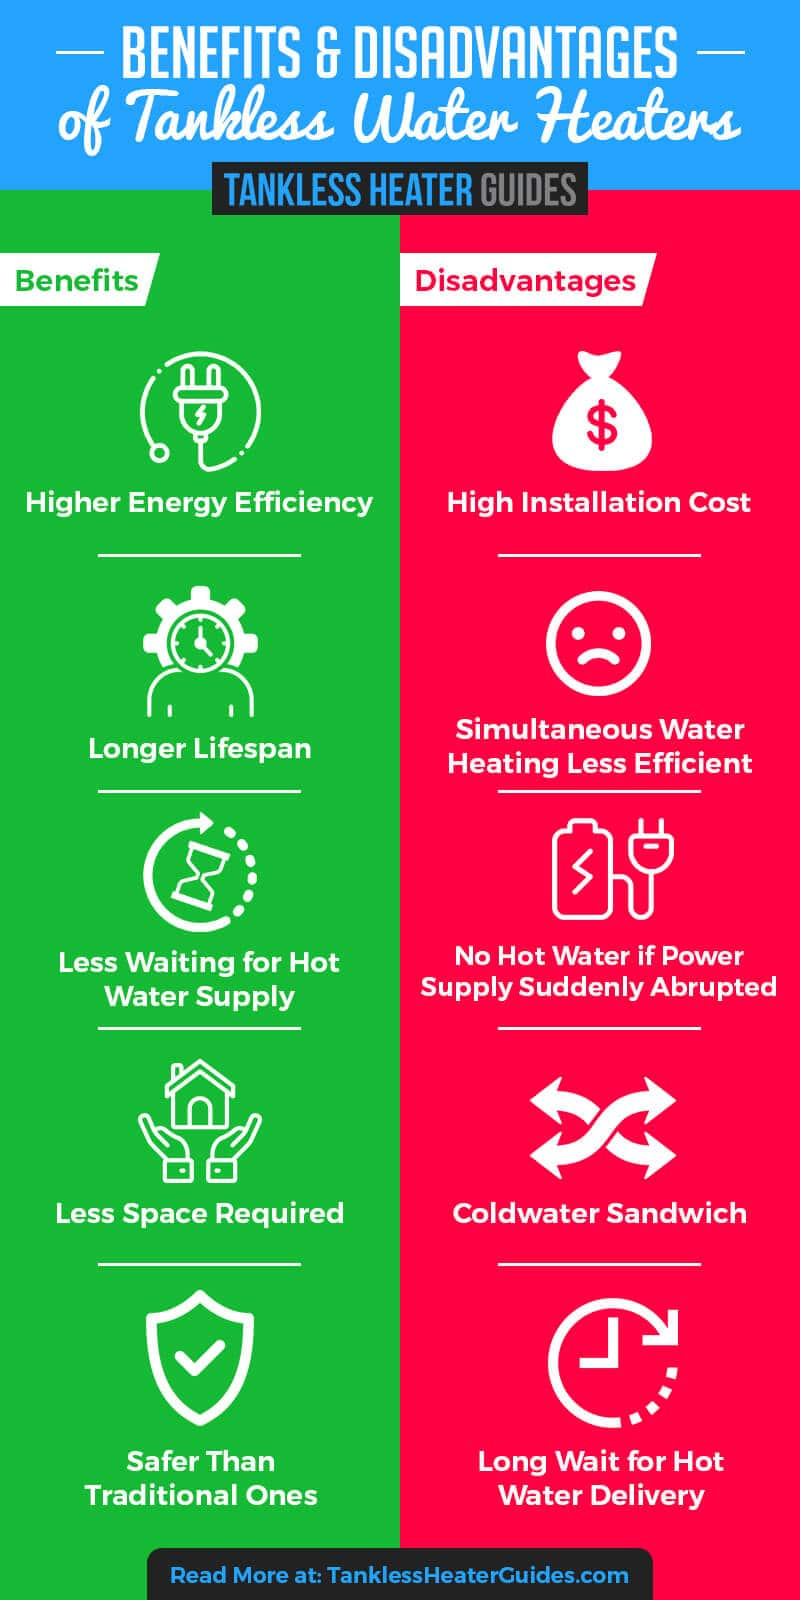 Benefits and Disadvantages of Tankless Water Heaters - Infographic